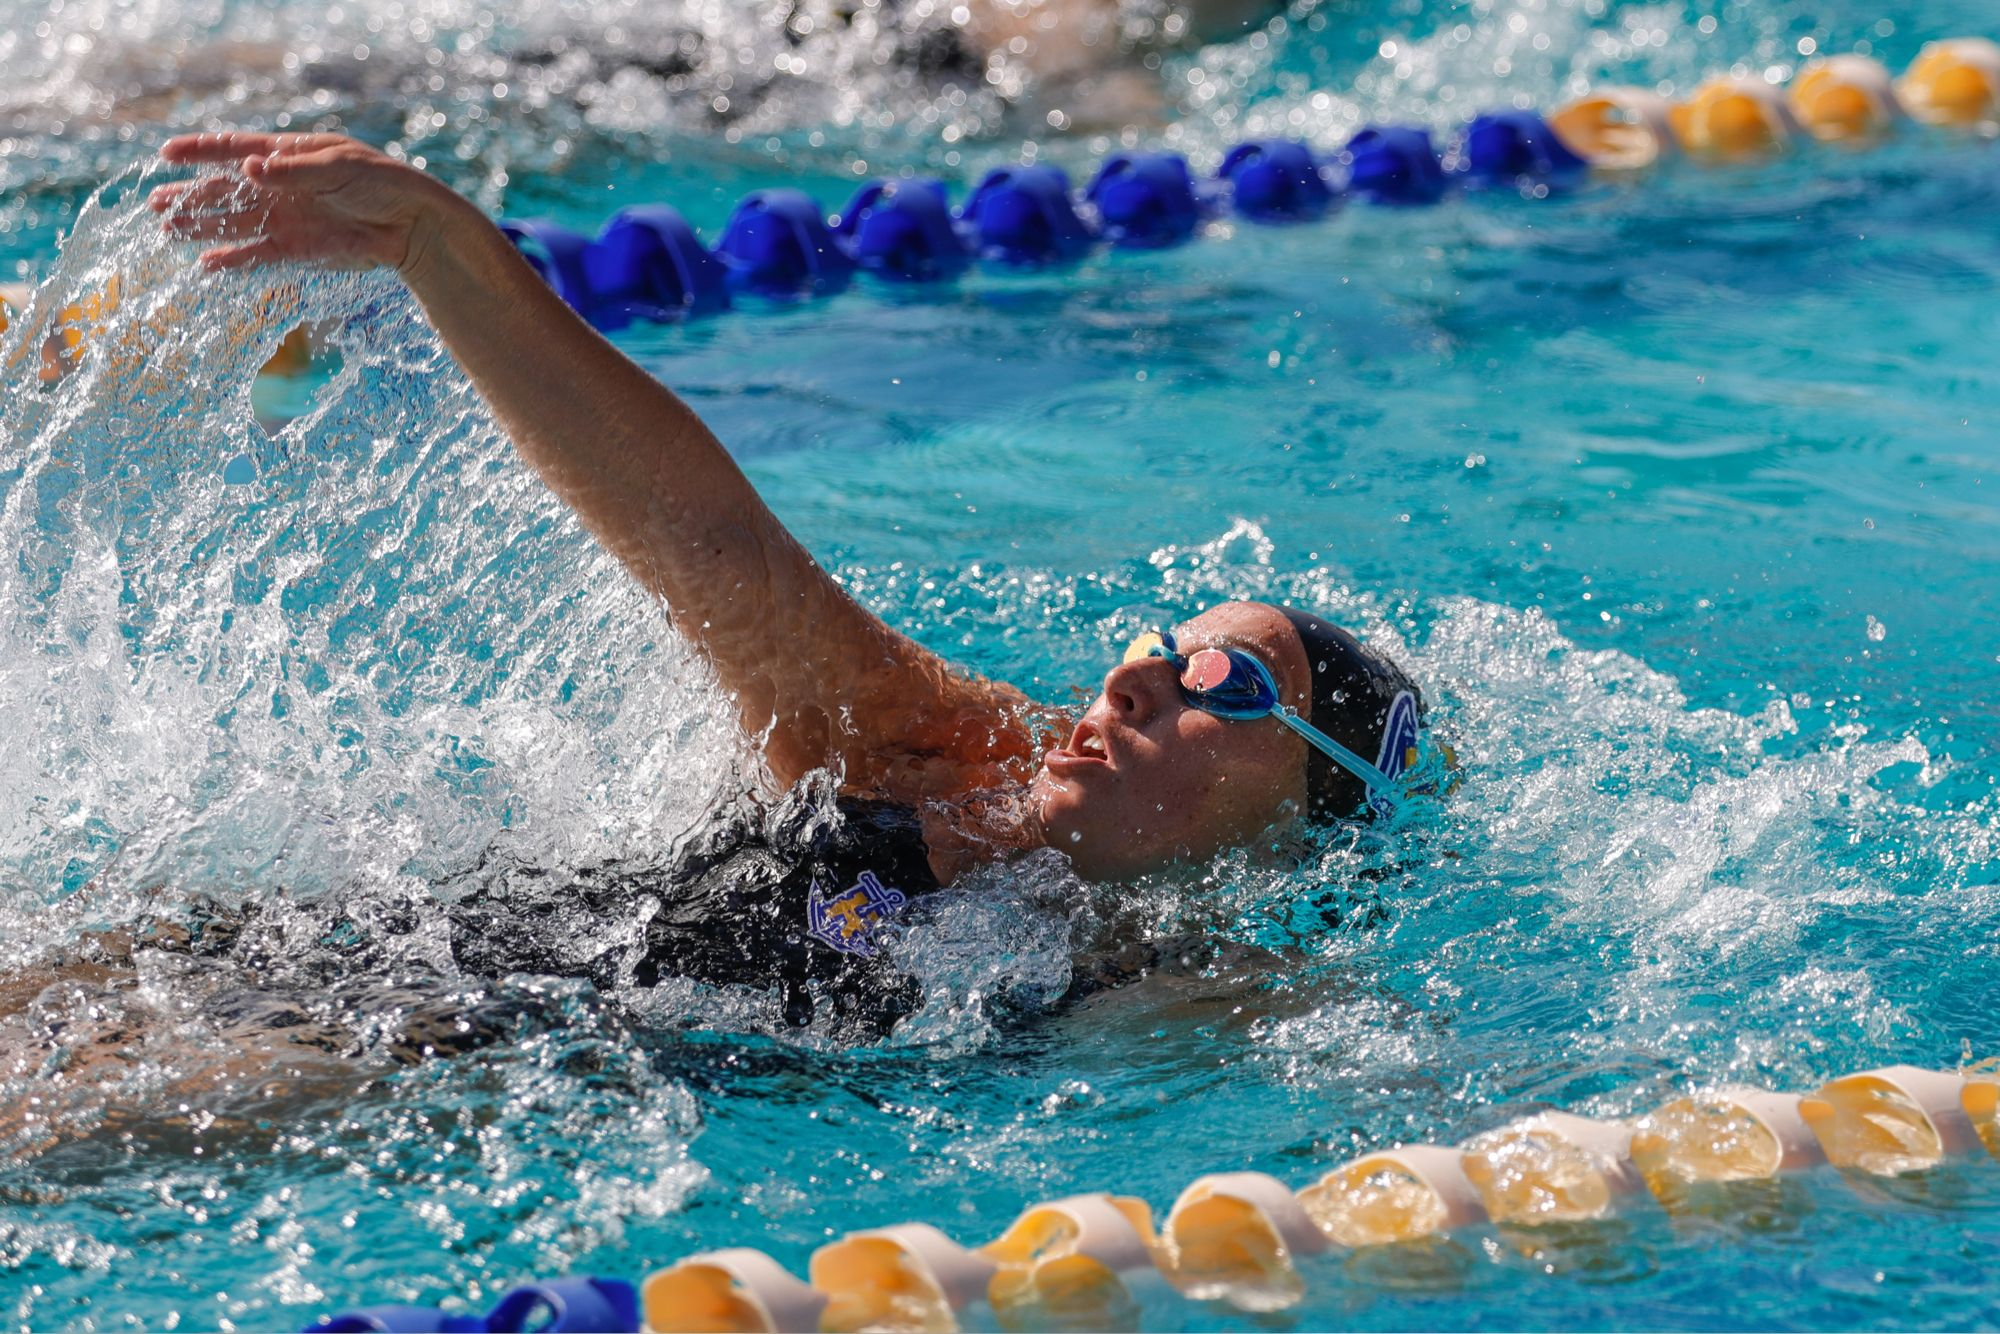 A swimmer in the pool during a meet doing the backstroke.